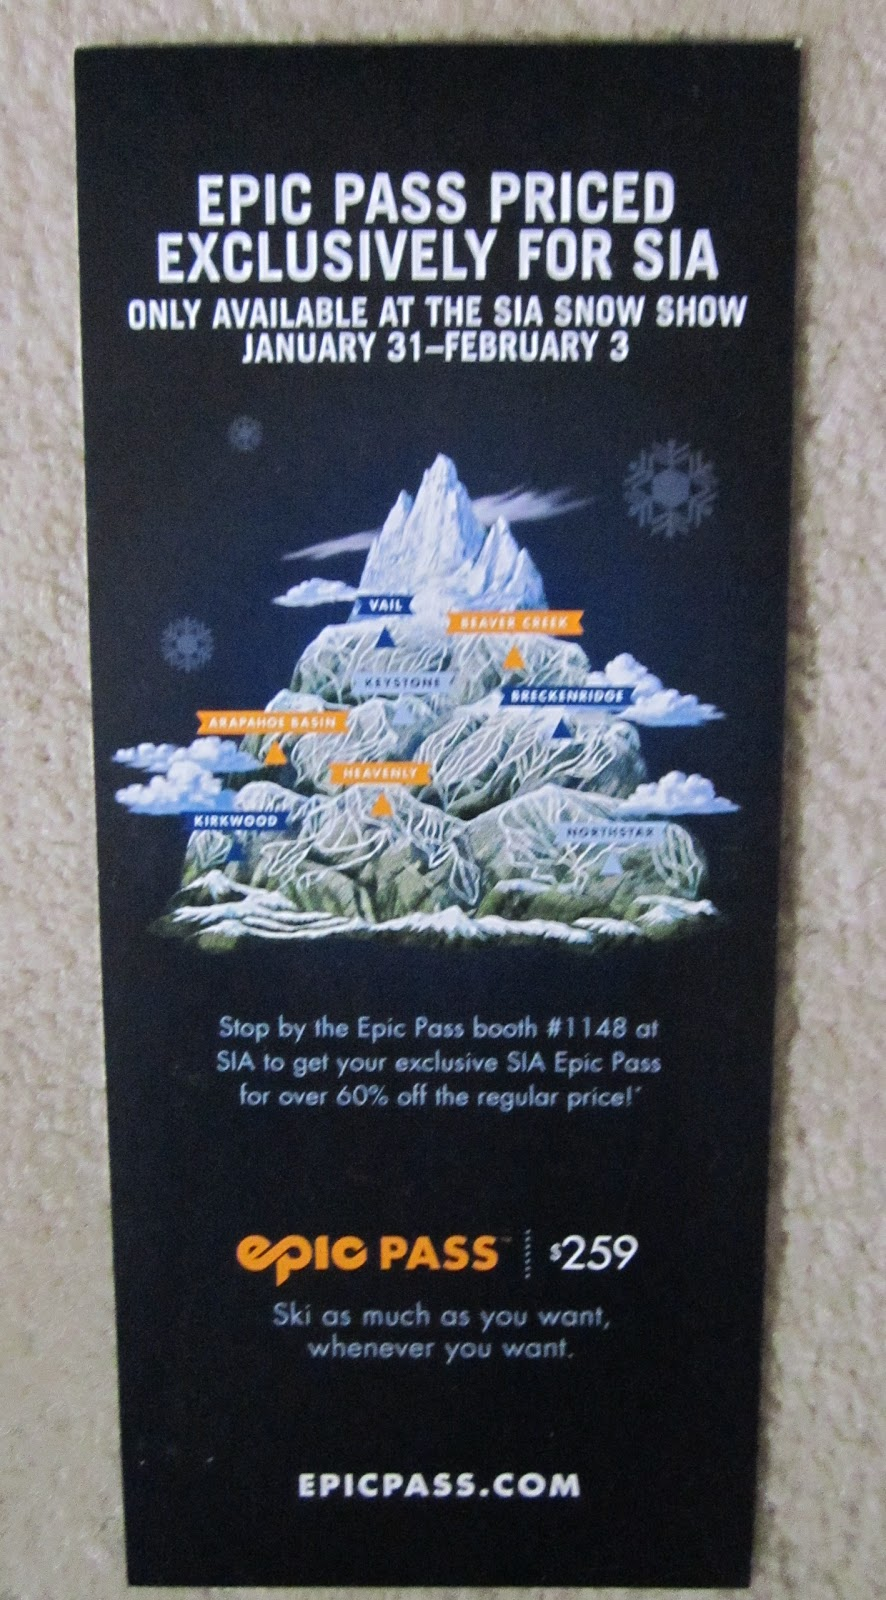 Colorado Ski Deals and Bargains: Blackout days for the ...Epic Pass